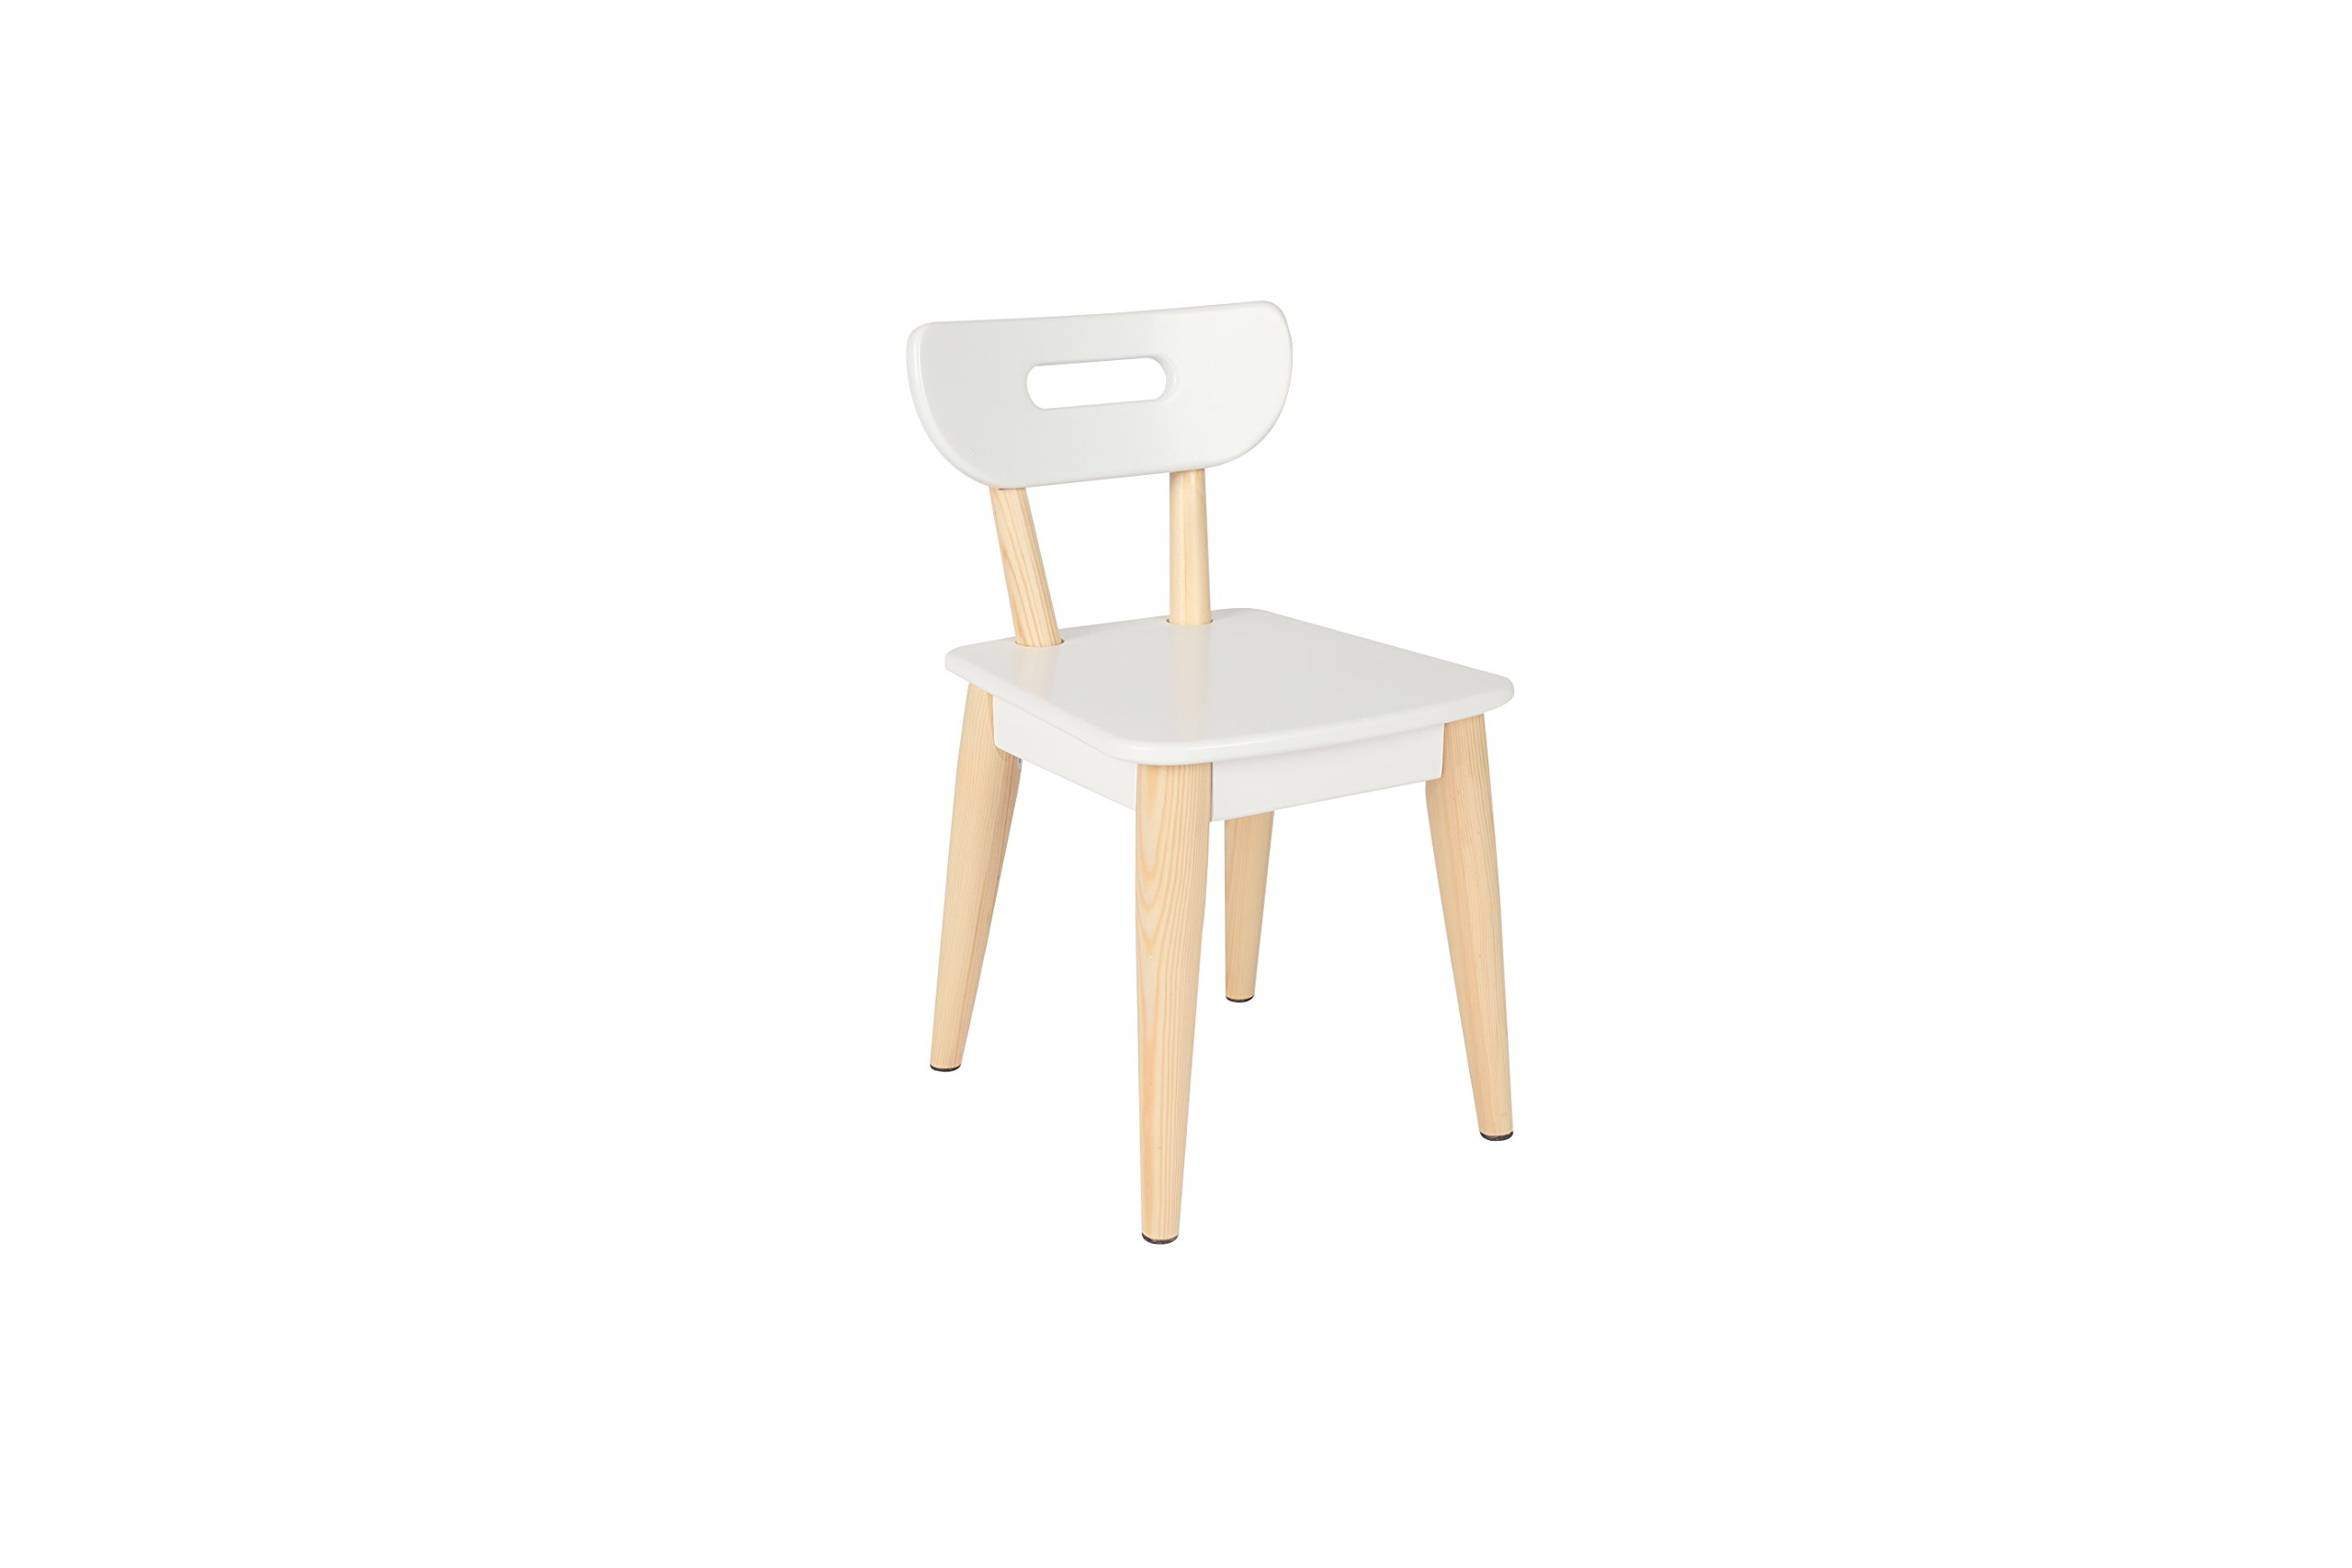 Max & Lily Modern Style Wood Kid and Toddler Chair